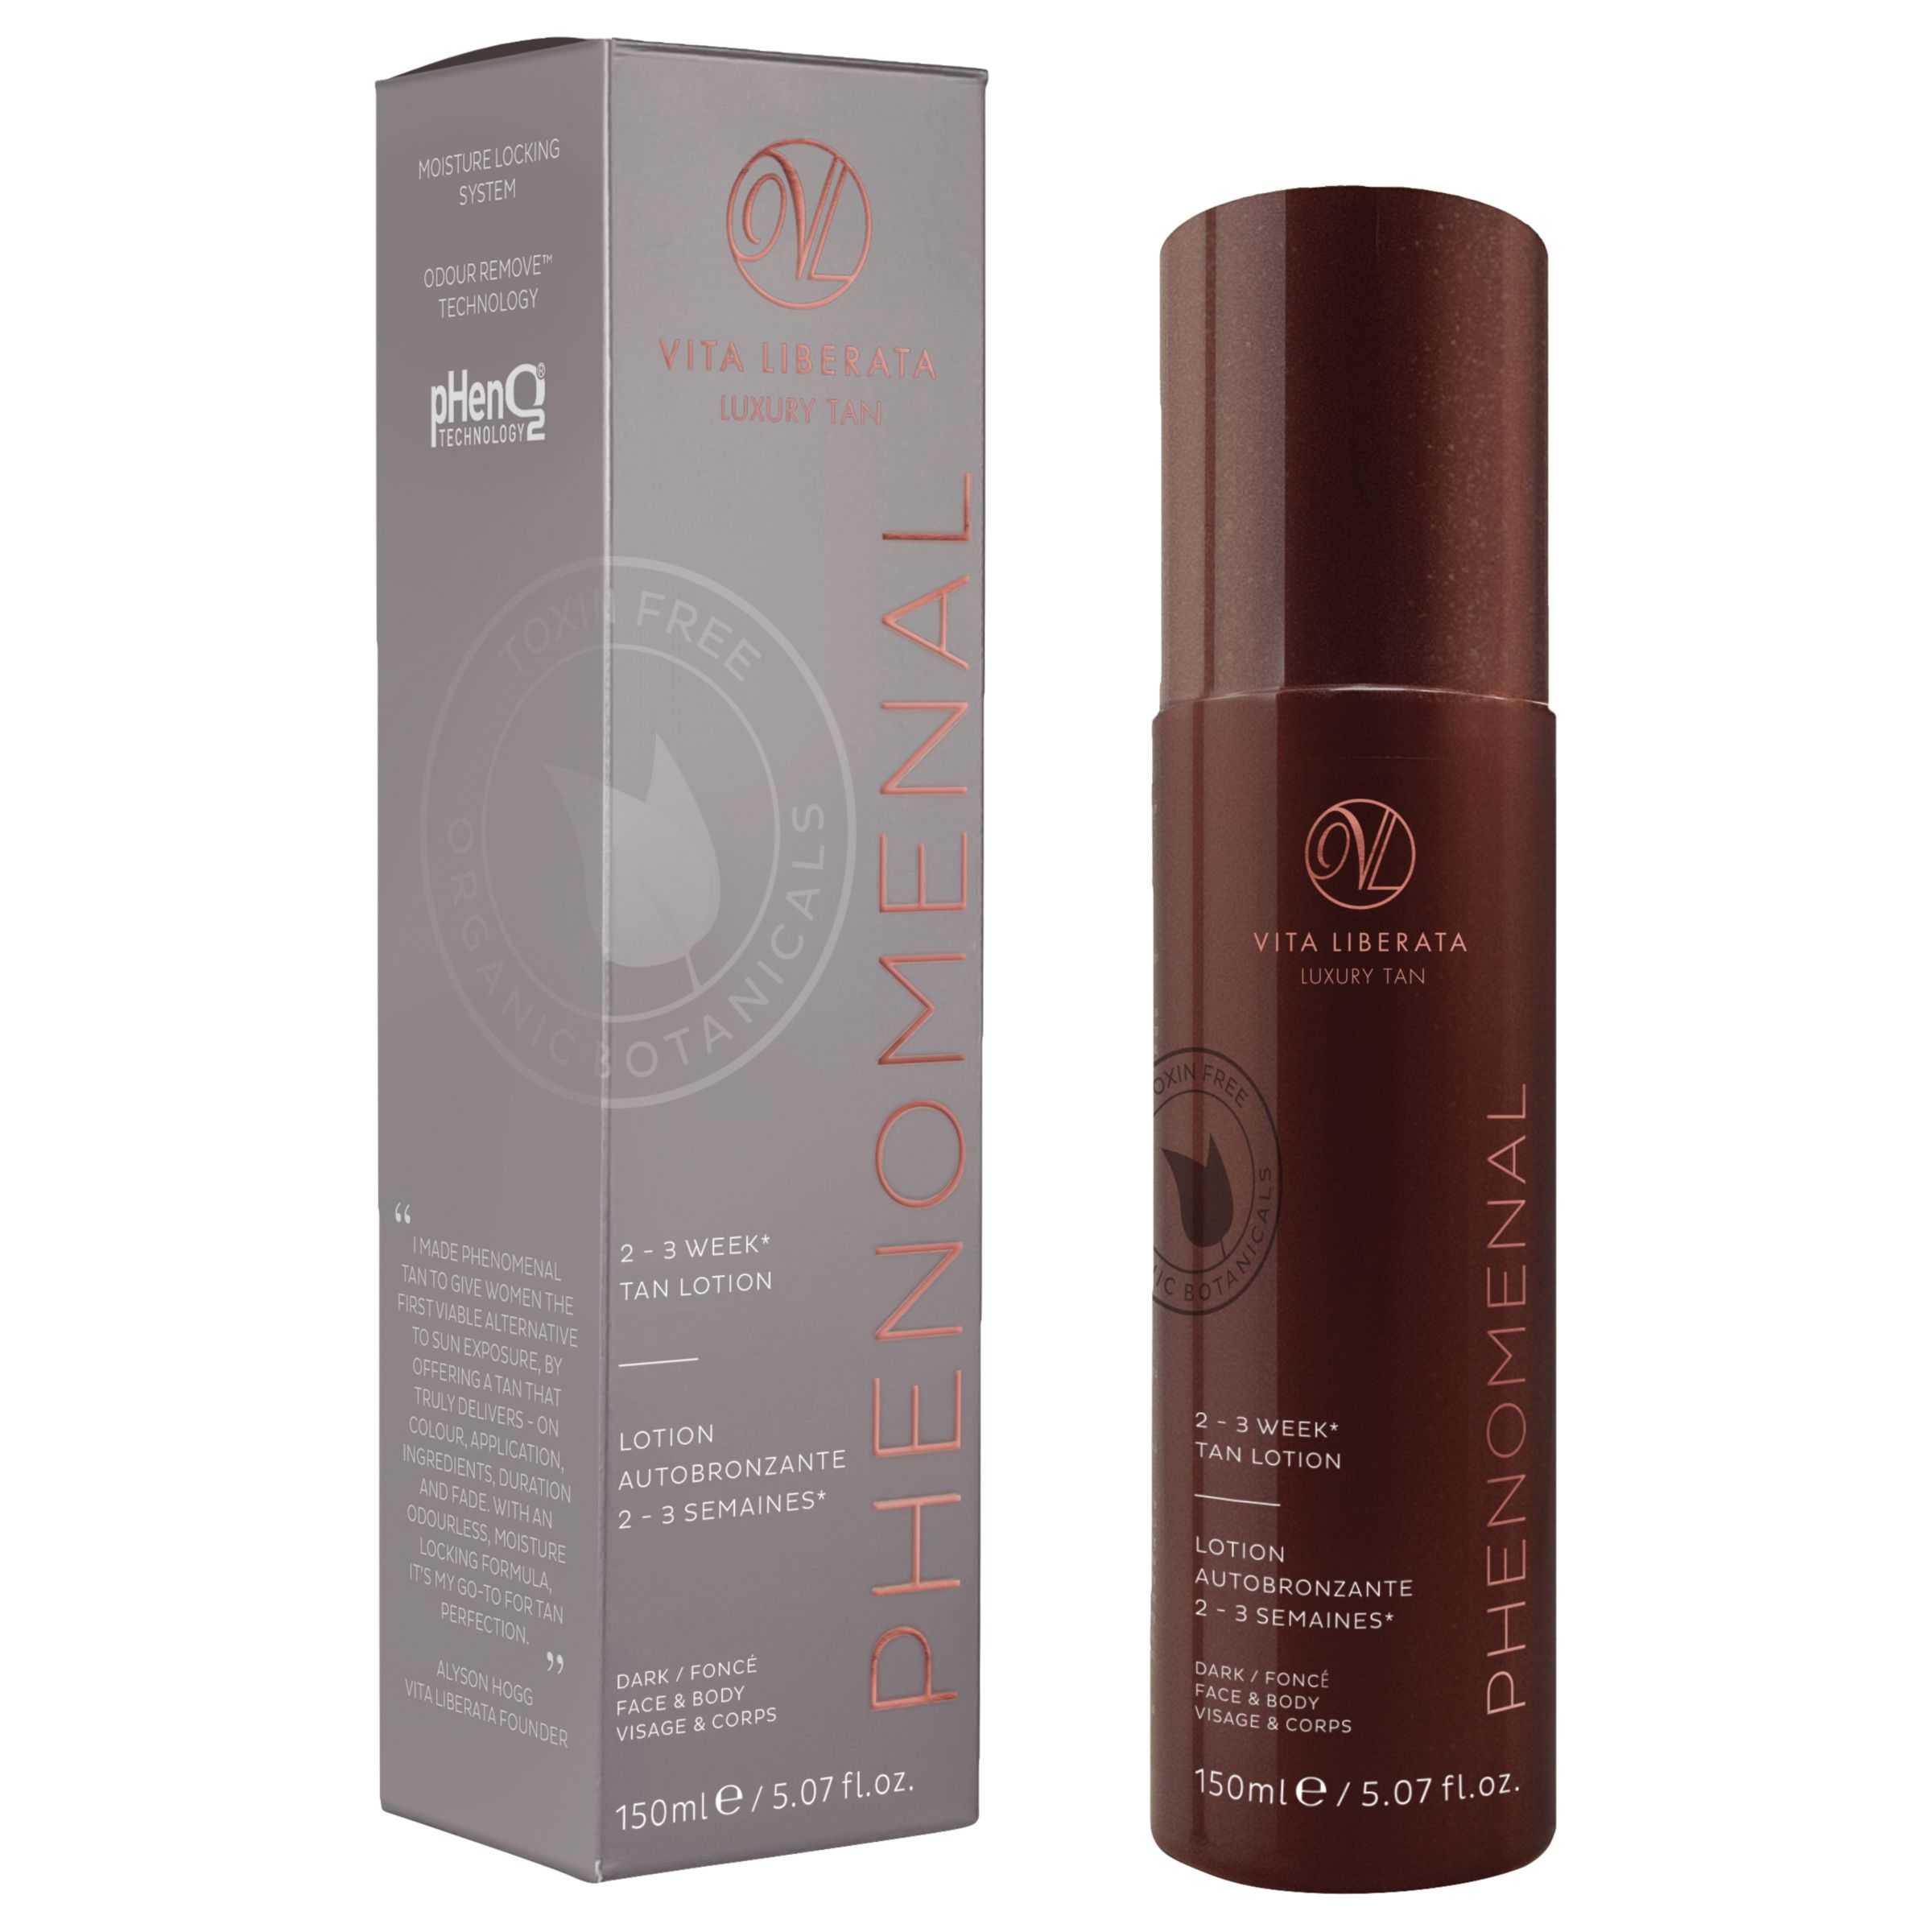 Vita Liberata Vita Liberata pHenomenal 2-3 Week Face & Body Tan Lotion, 150ml